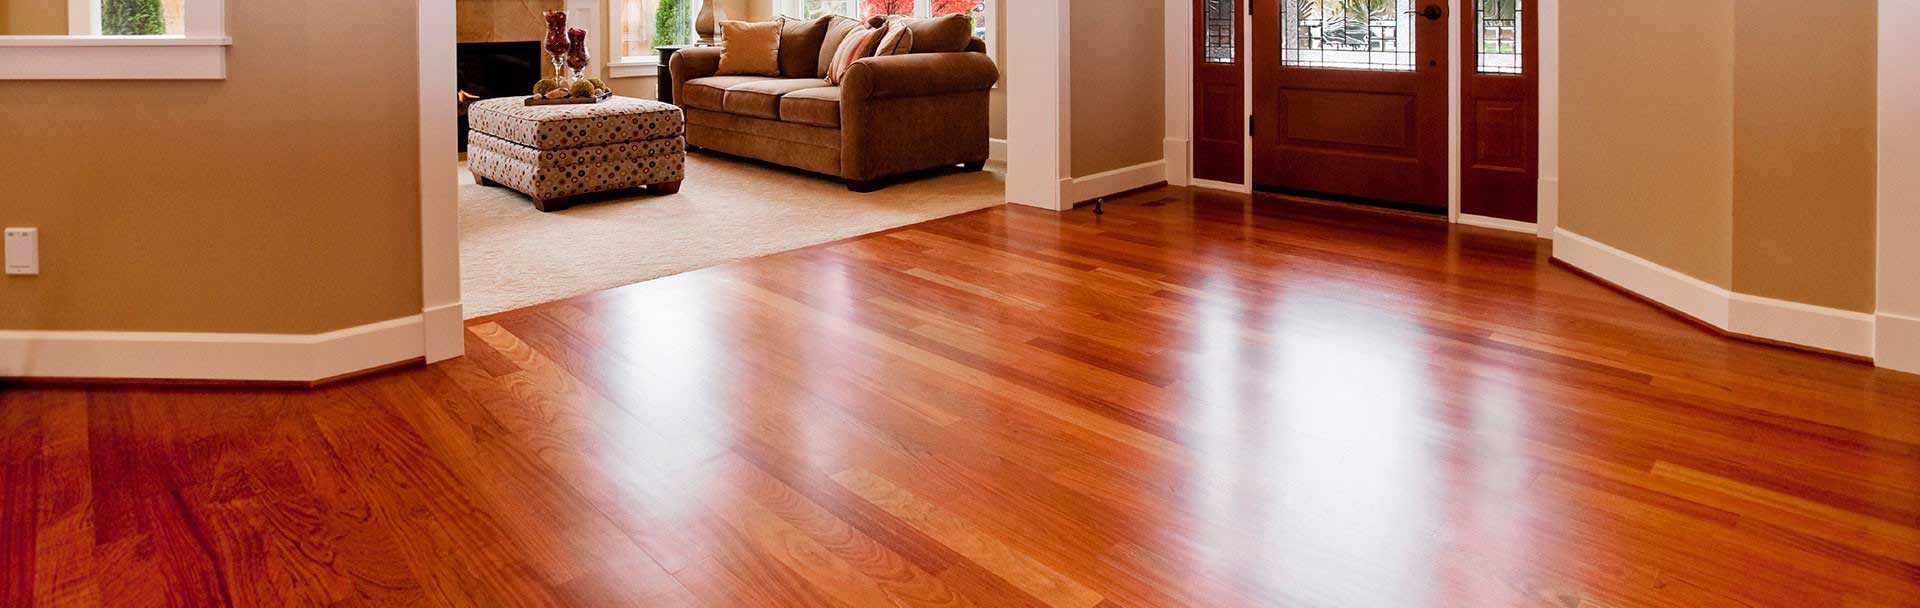 Sunnyvale hardwood floor installation refinishing repair for Wood floor refinishing